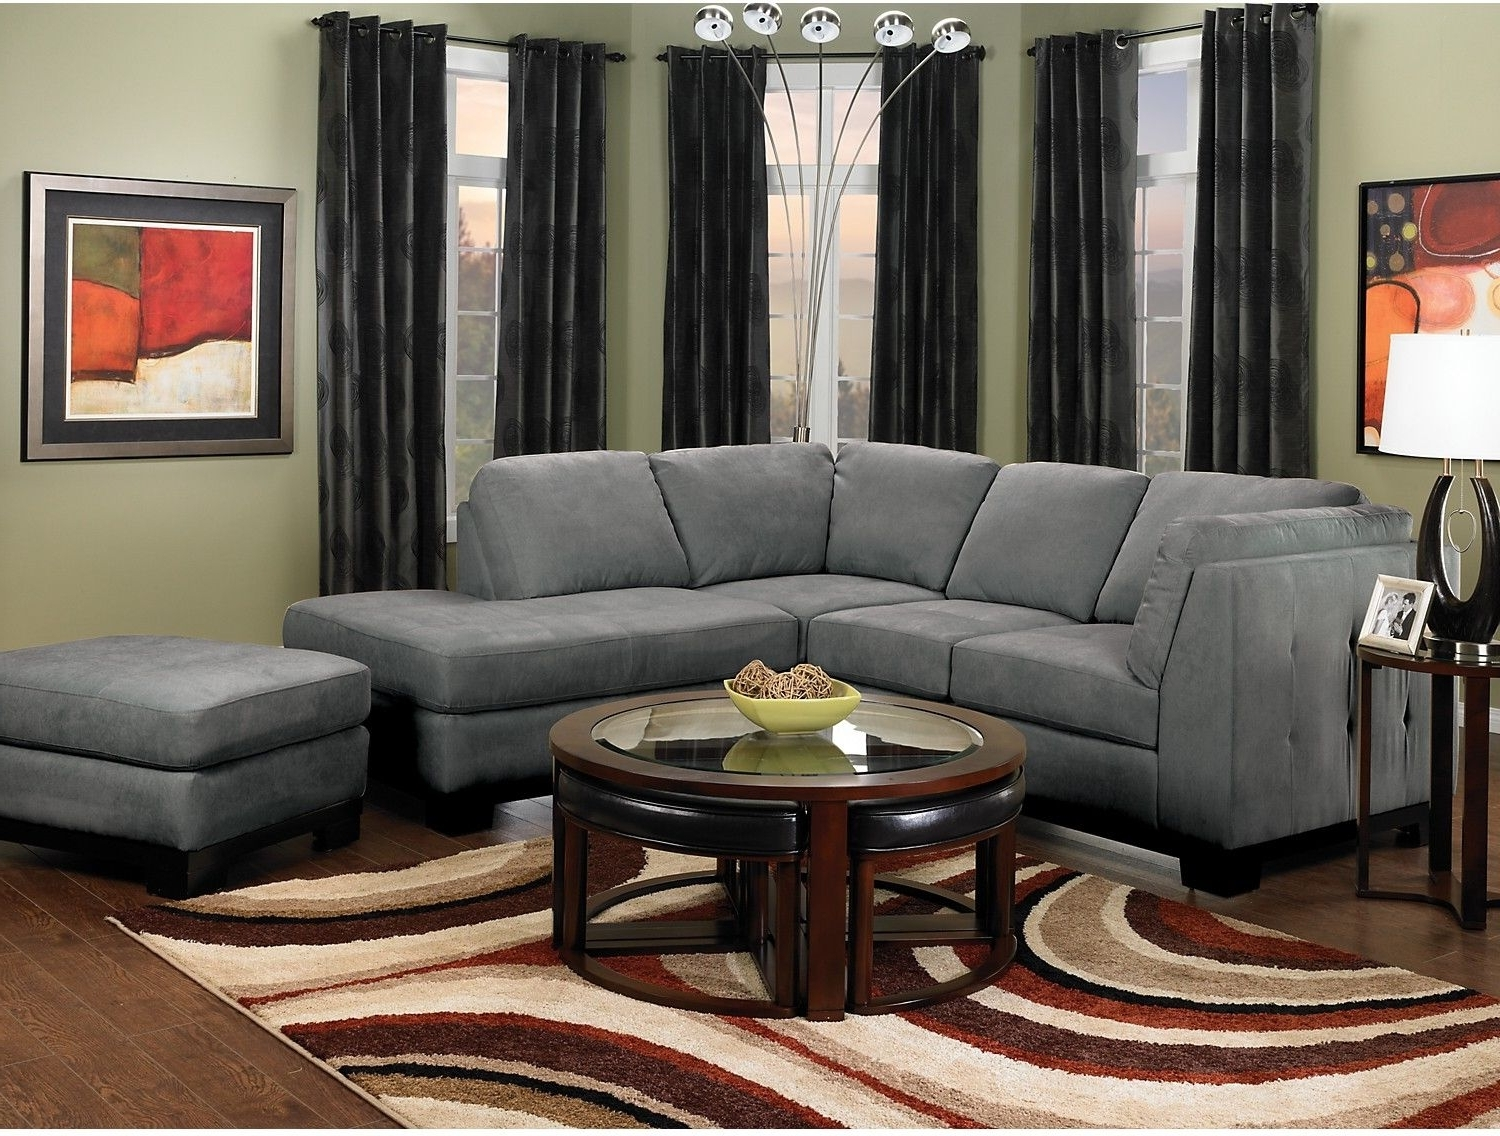 Sectional Sofas At The Brick Intended For Well Known Oakdale 2 Piece Microsuede Sectional W/right Facing Chaise – Grey (View 15 of 20)